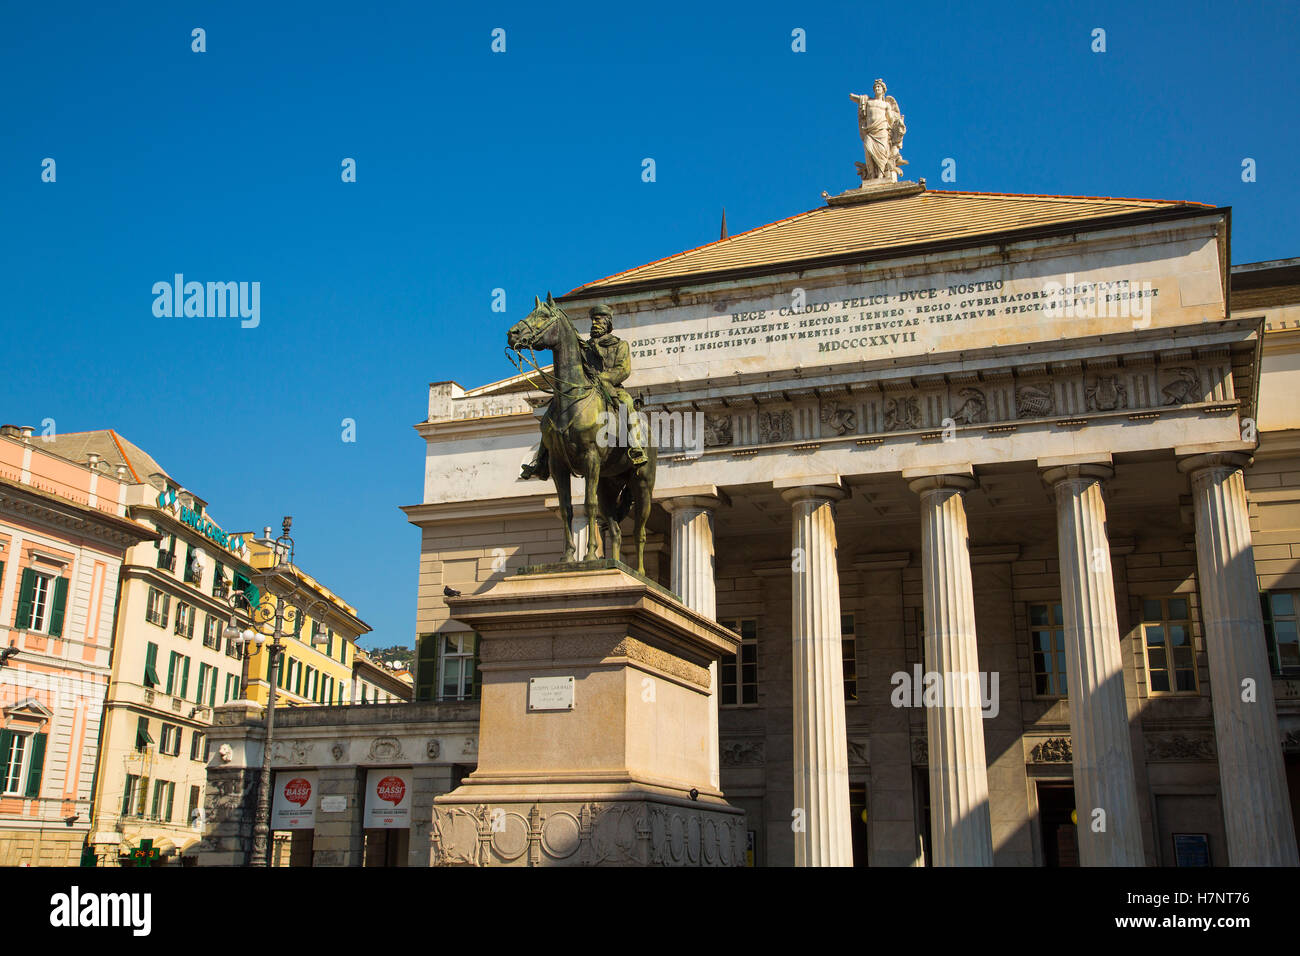 Garibaldi Statue & Carlo Felice Theater, Opera Theater. Historic center, Old Twon. Genoa. Mediterranean Sea. - Stock Image